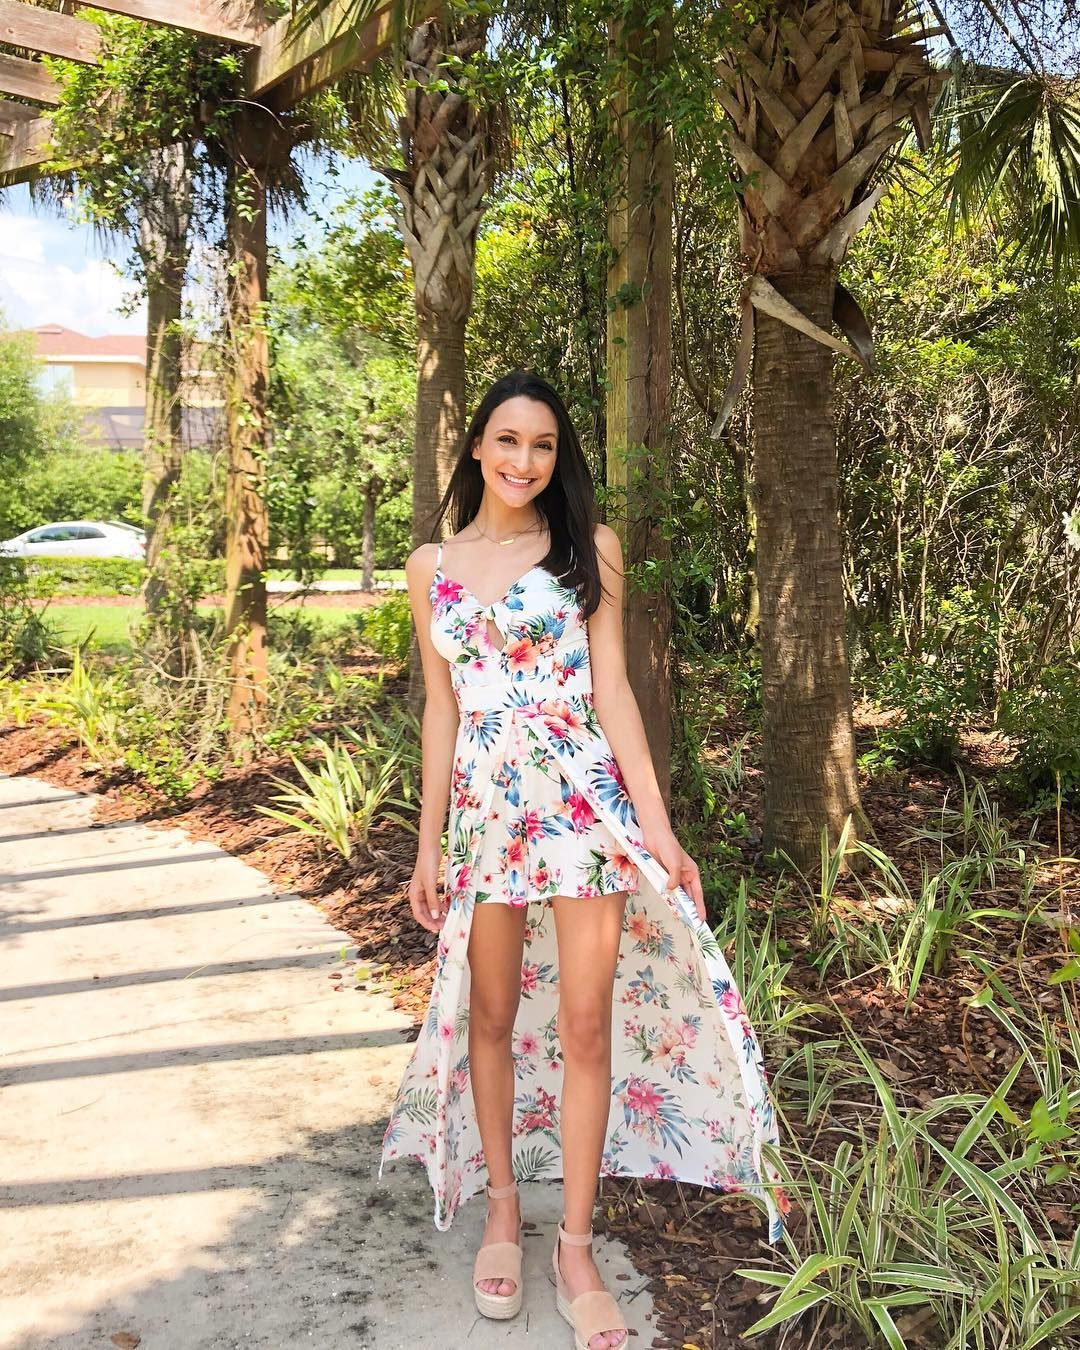 c7d935ab8ecc Our Tropical Maxi Romper is perfect for your next getaway! Features a  vibrant floral print